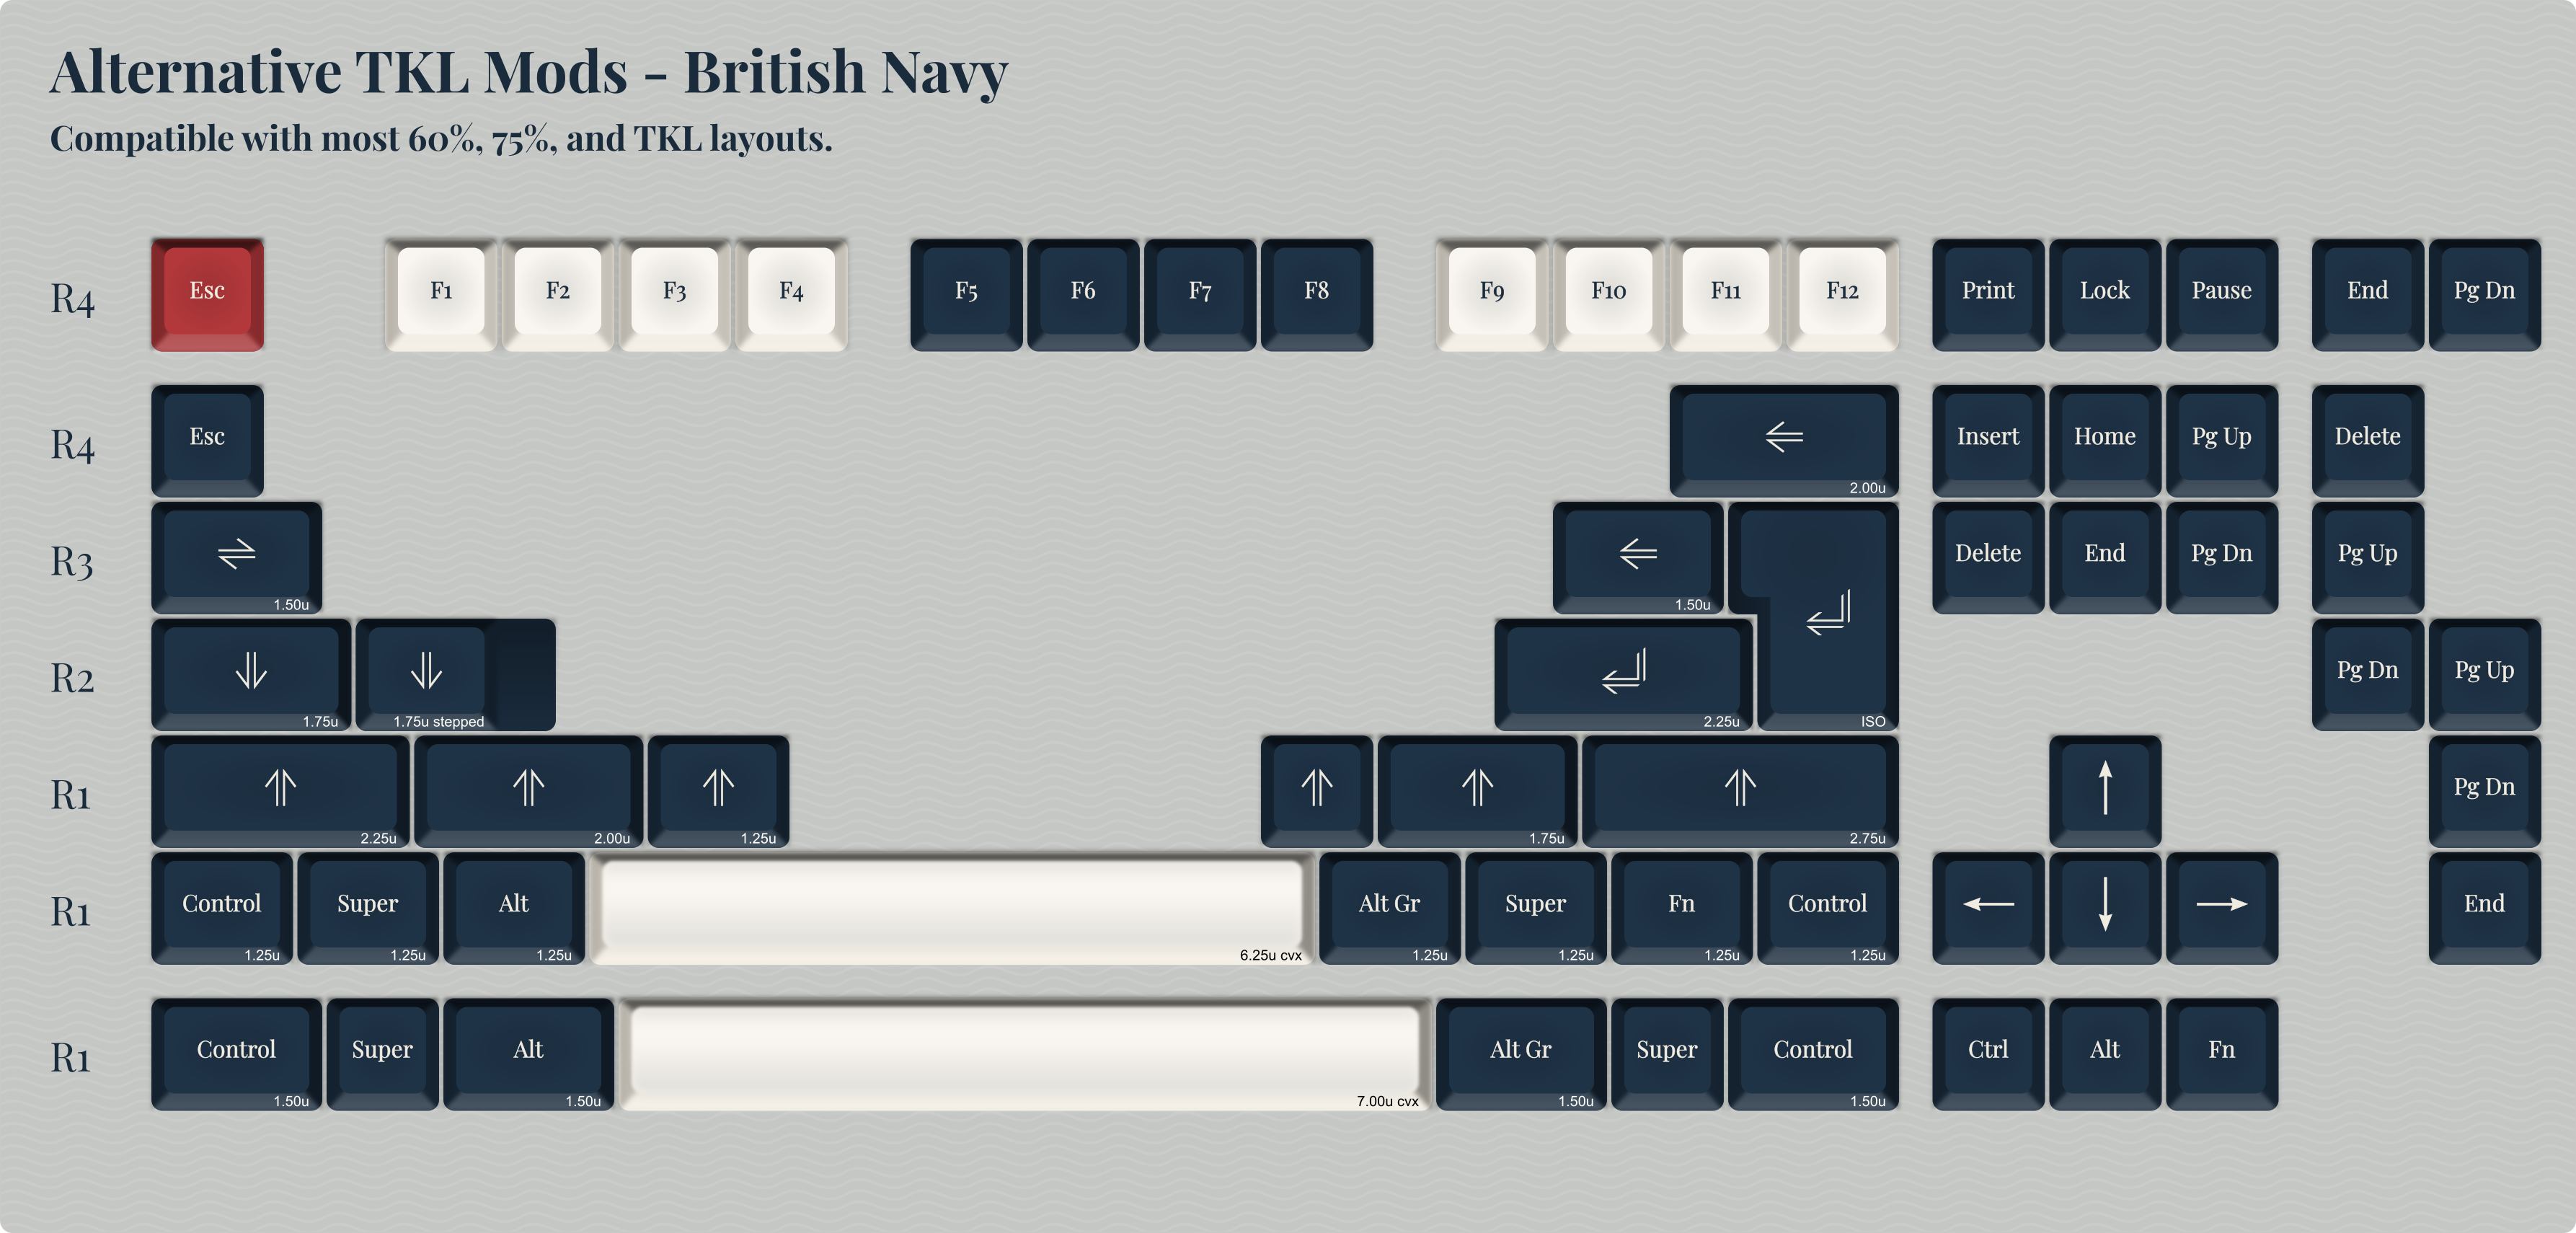 Alternative TKL Mods - British Navy